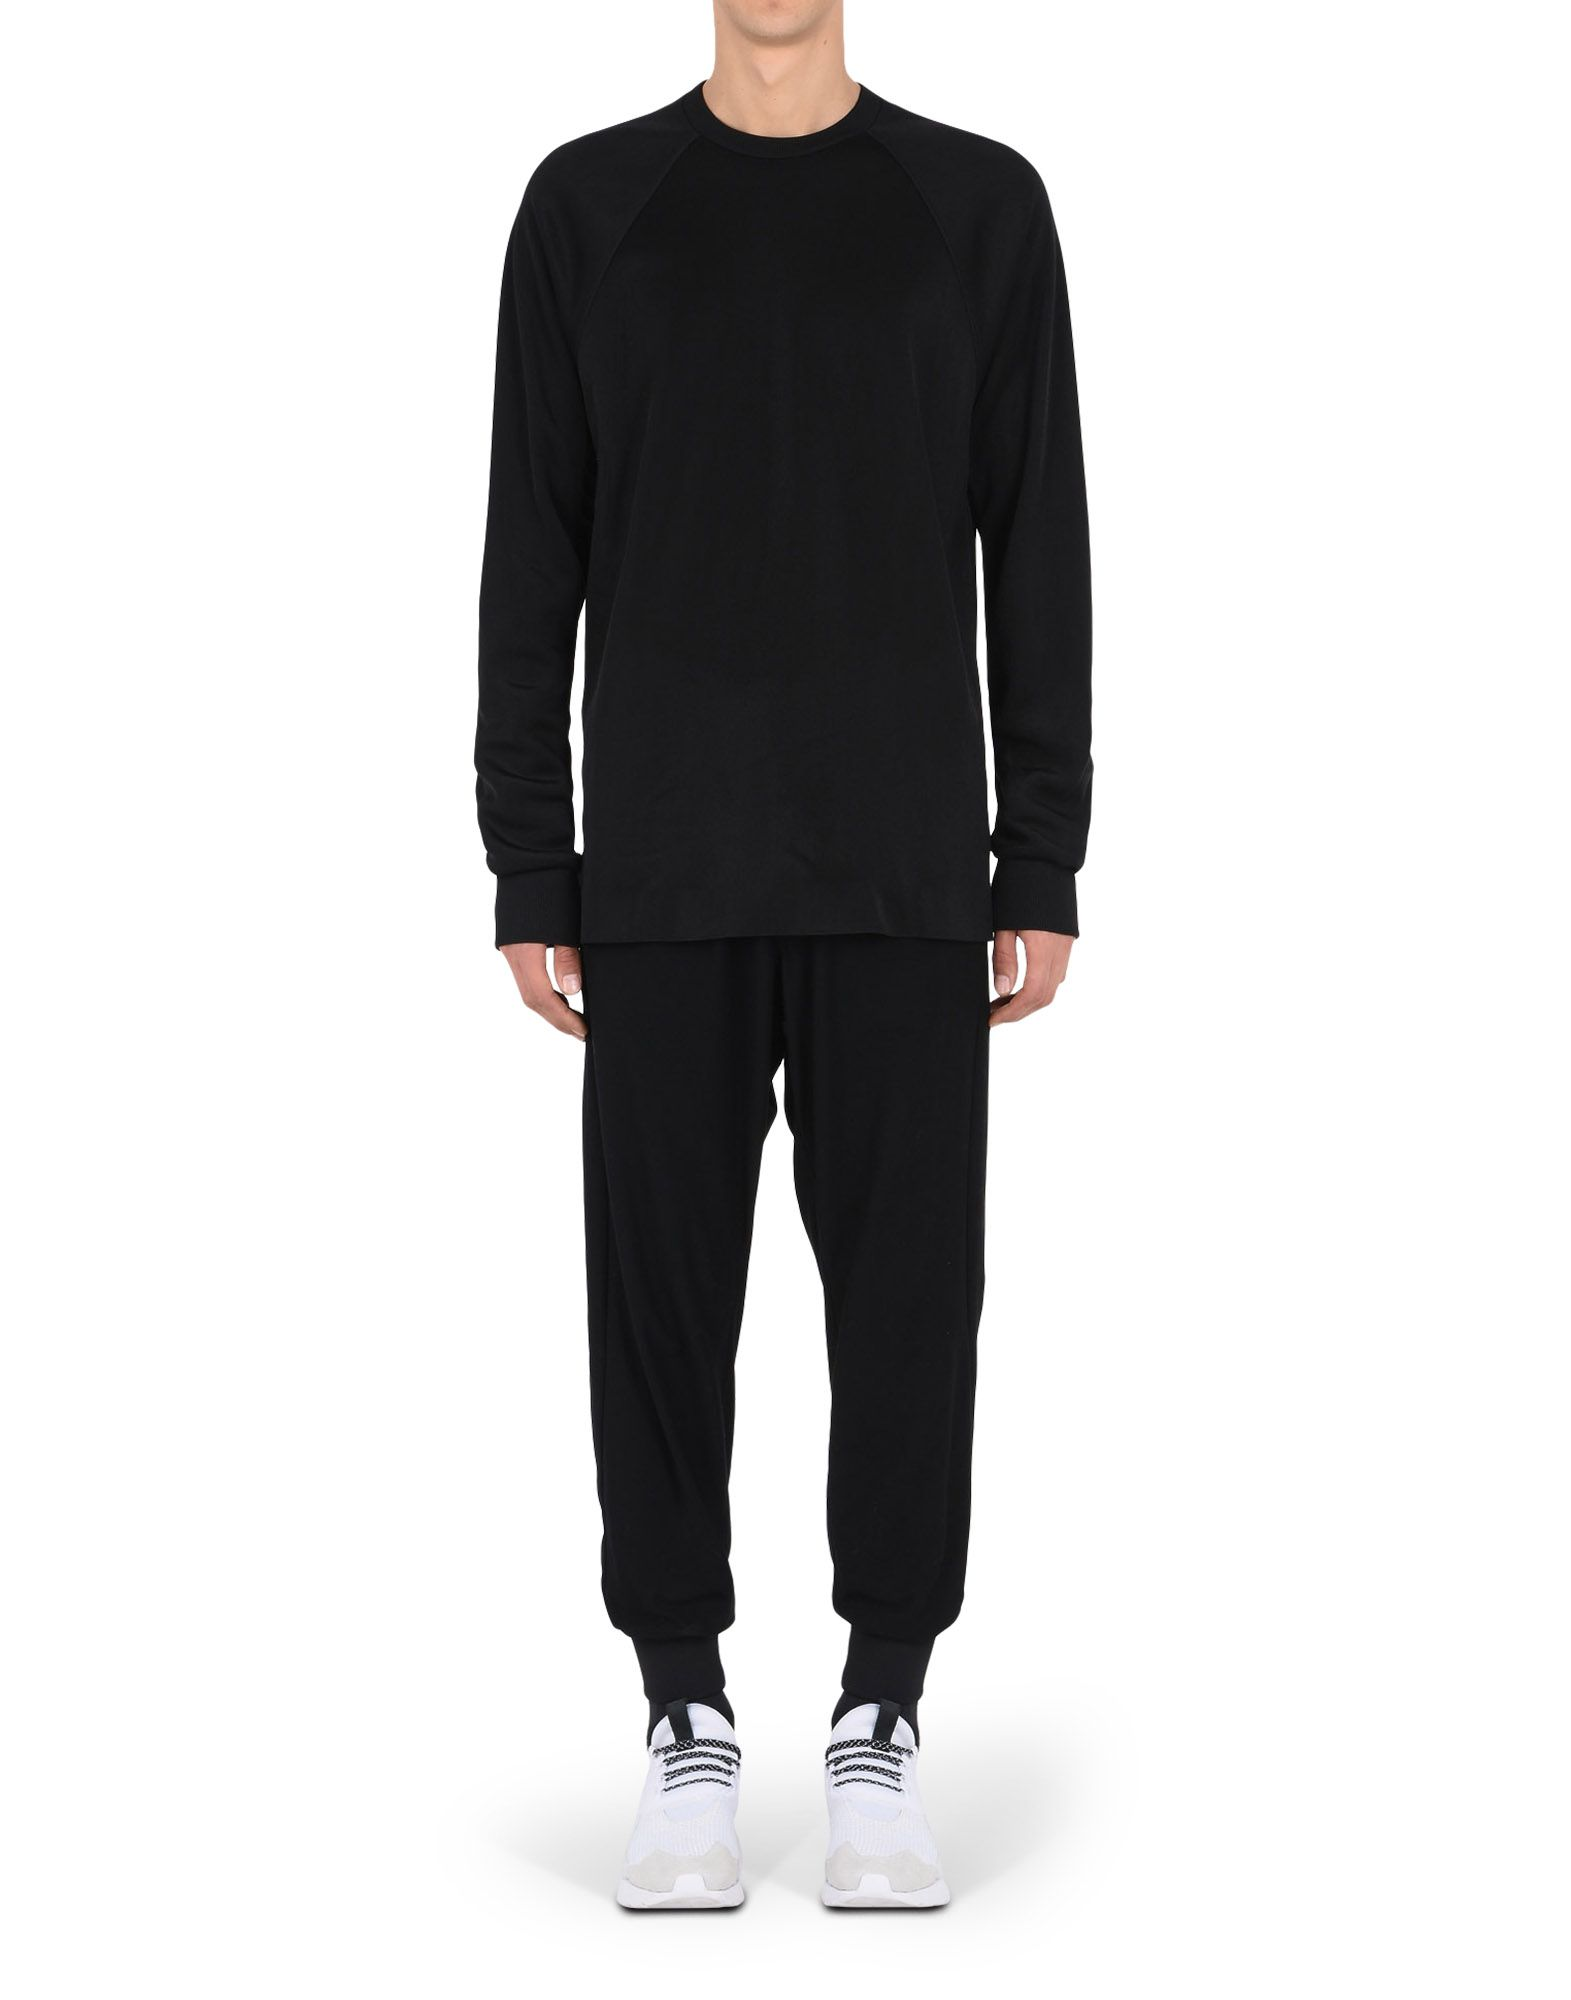 Y-3 Y-3 SPACER MESH SWEATER Sweatshirt Man d